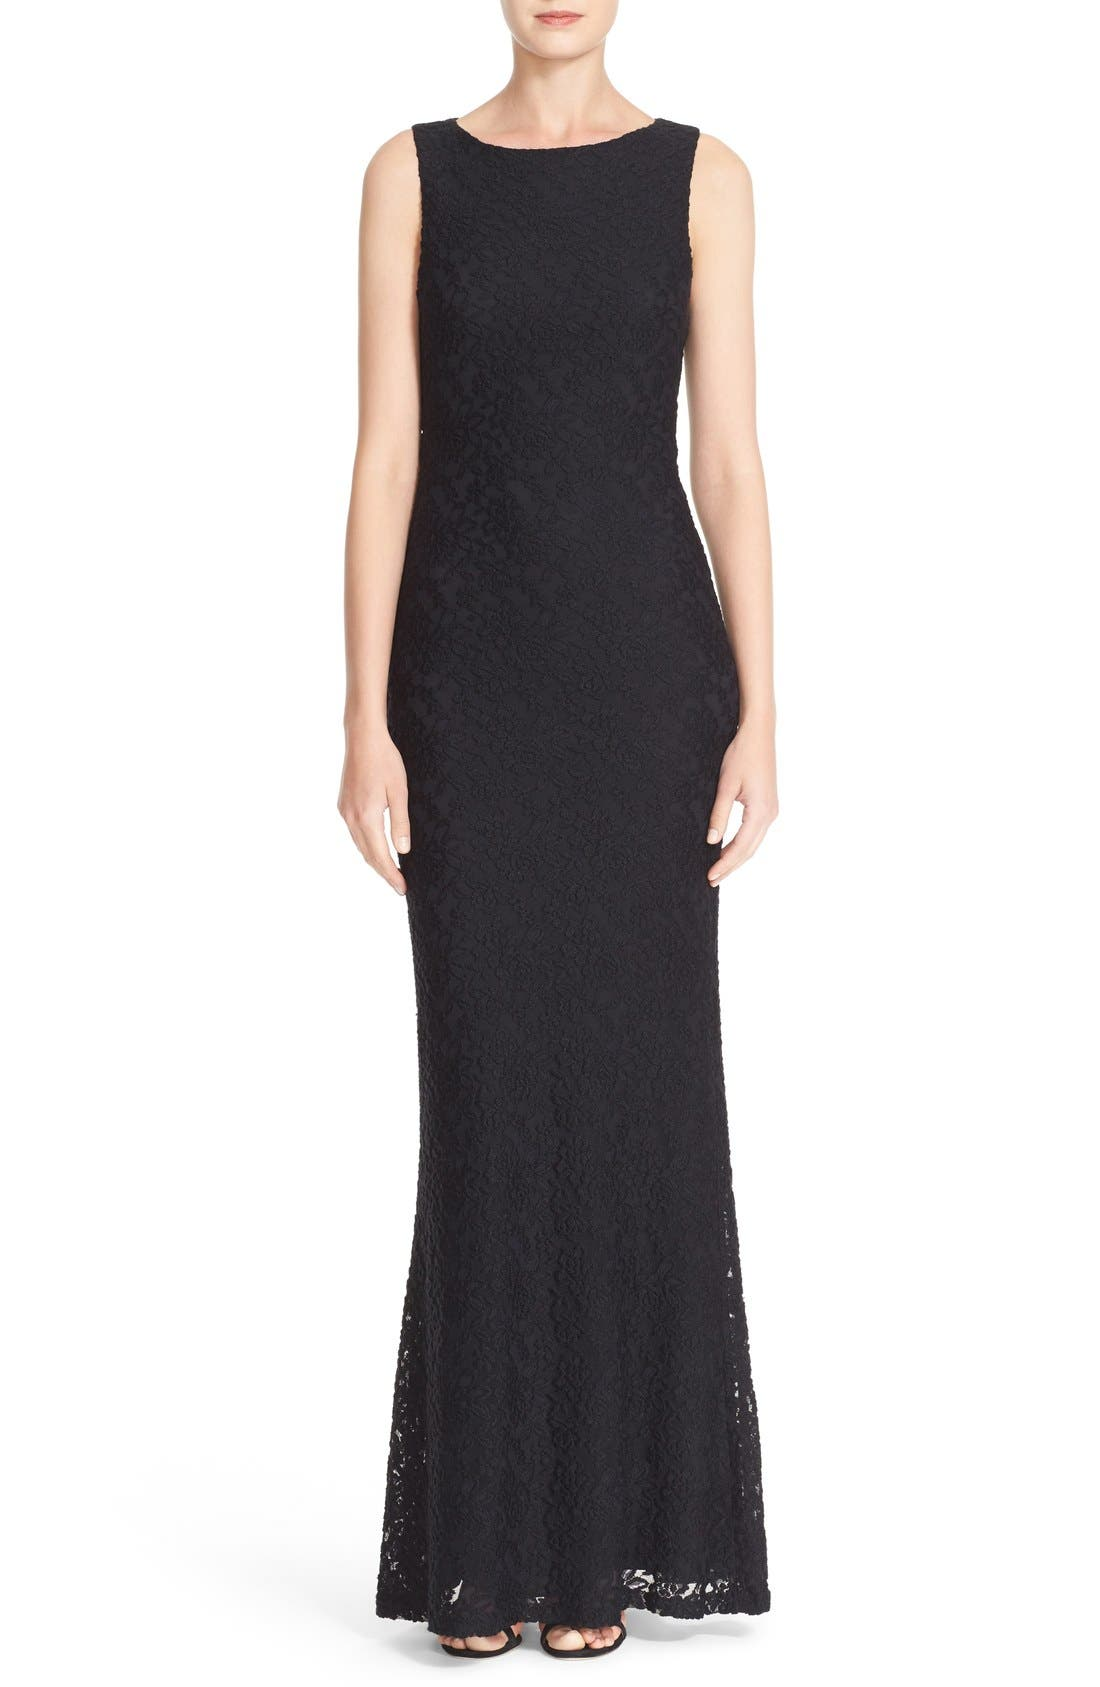 ALICE + OLIVIA 'Sachi' Open Back Lace Maxi